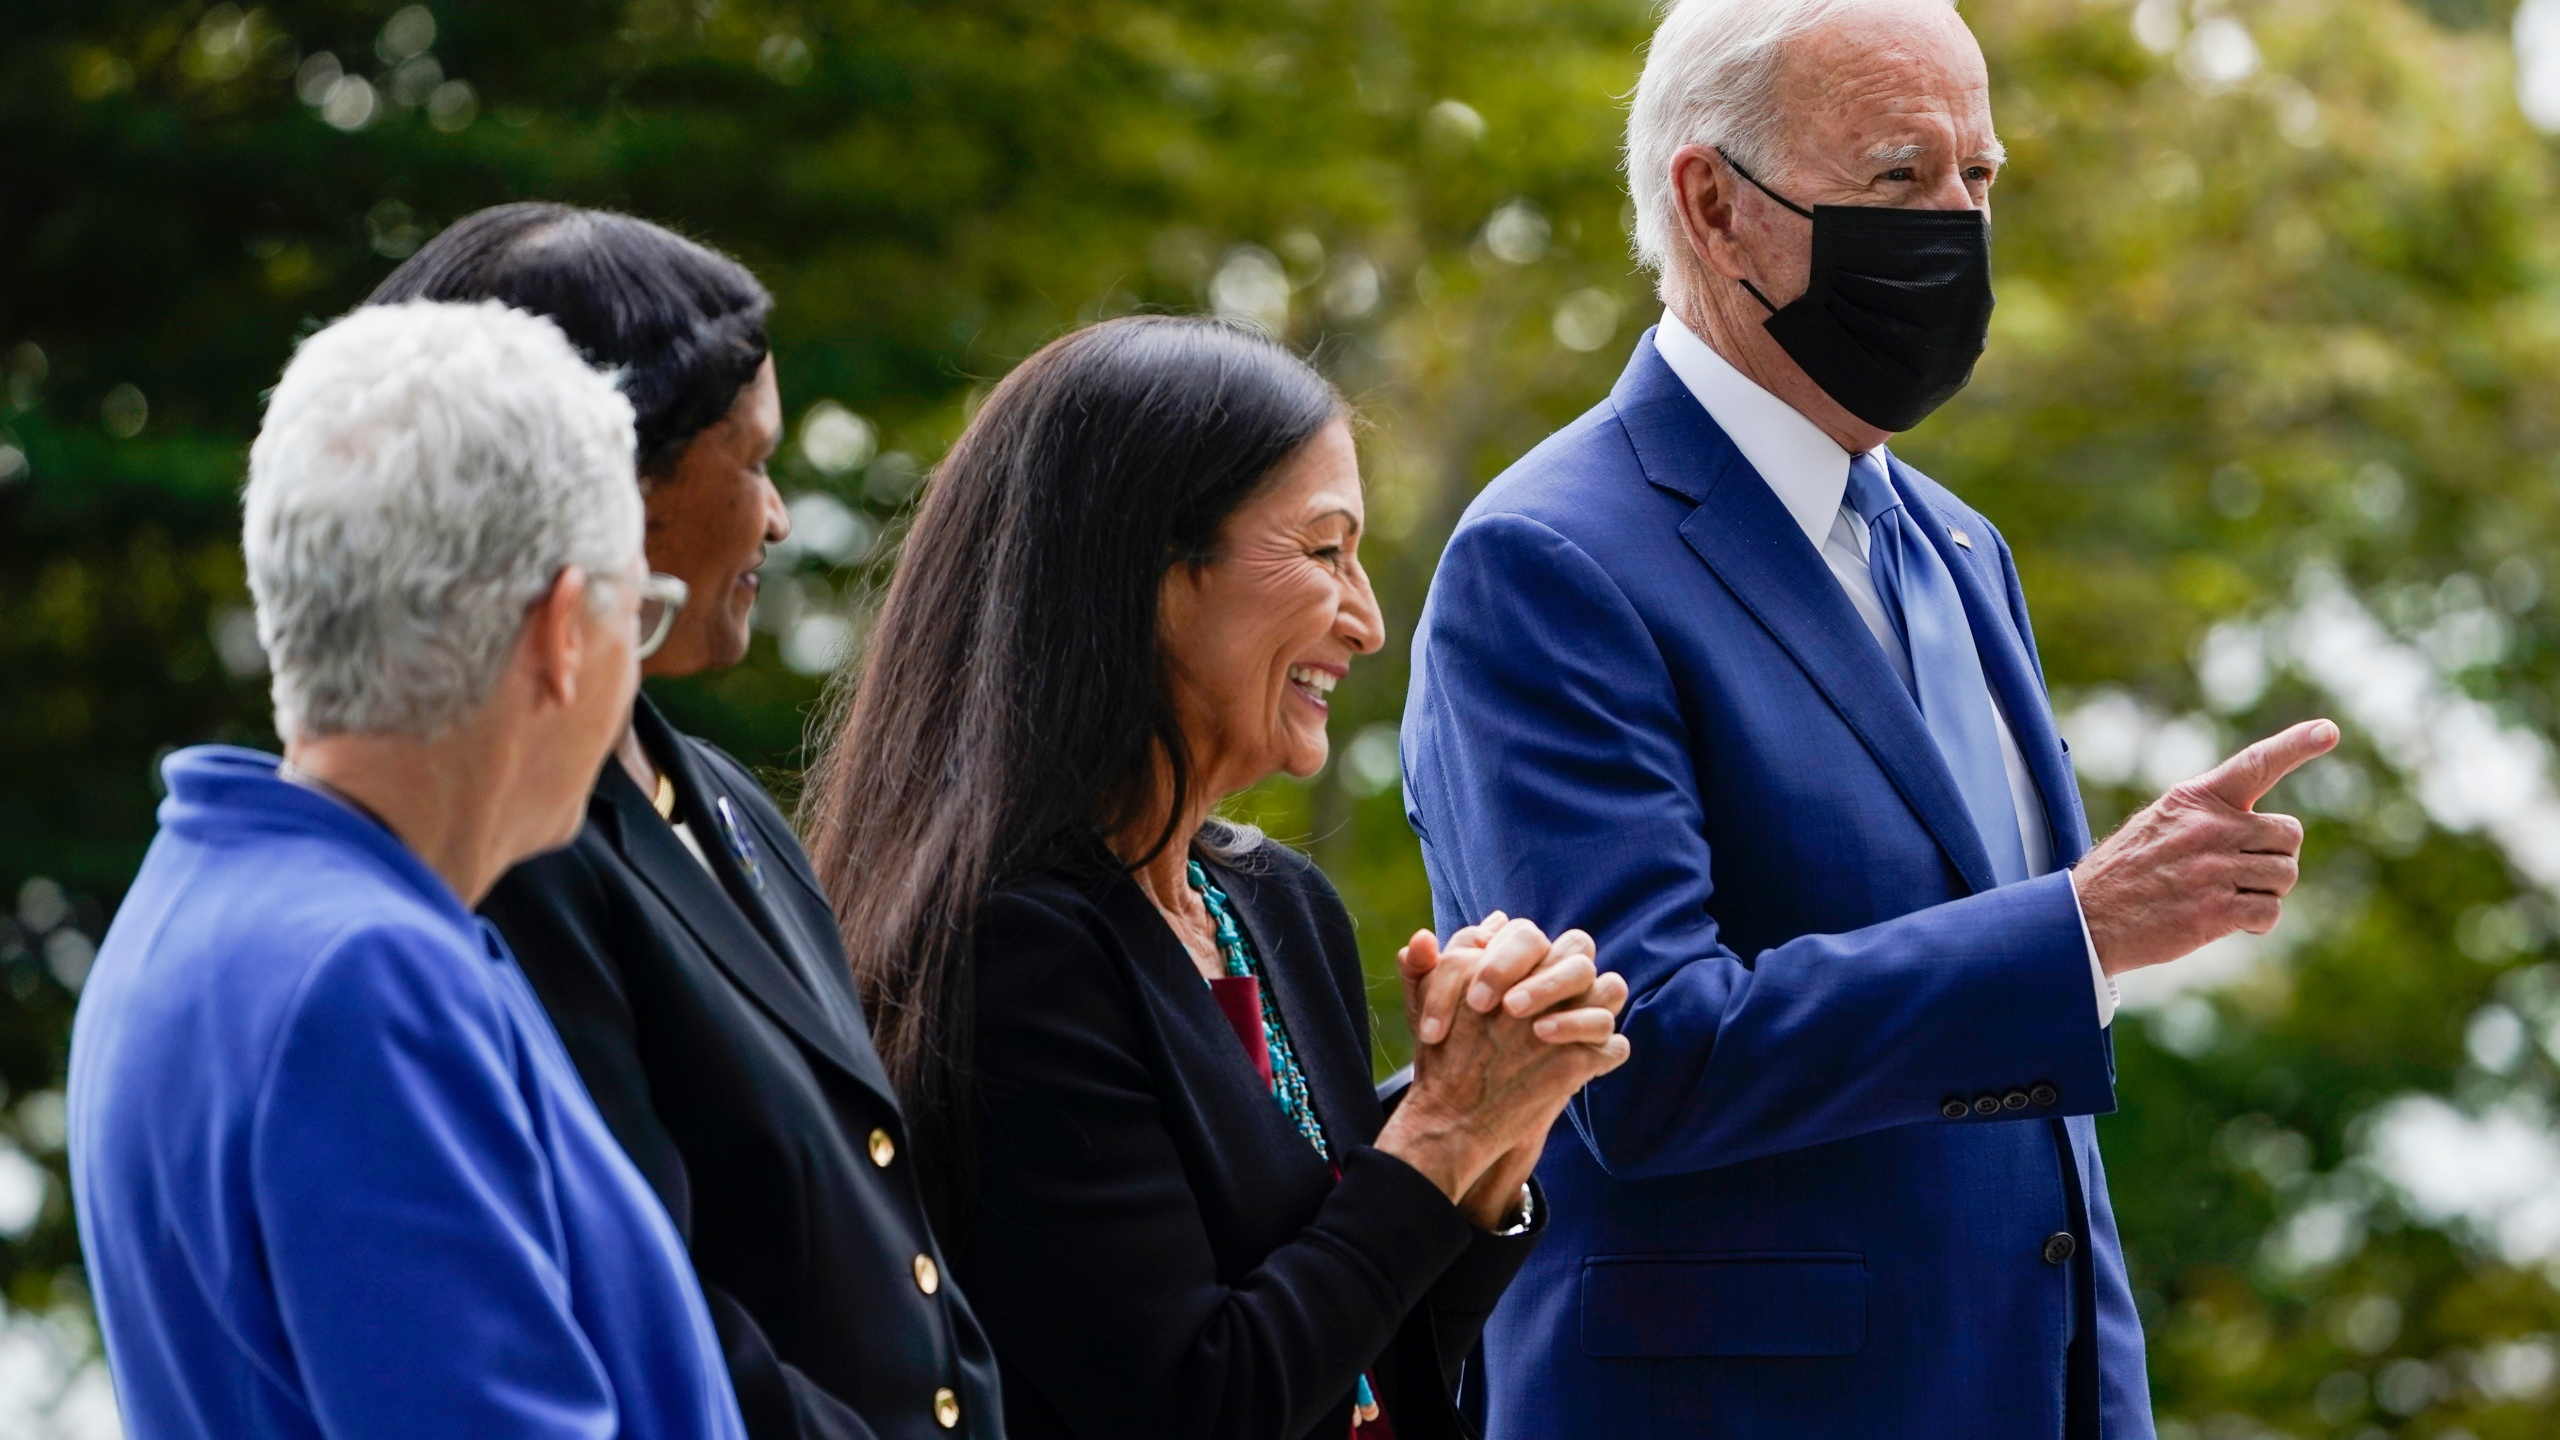 President Joe Biden gestures on the North Lawn of the White House on Oct. 8, 2021, with White House national climate adviser Gina McCarthy, Brenda Mallory, chair of the council on environmental quality, and Interior Secretary Deb Haaland. (Susan Walsh / Associated Press)